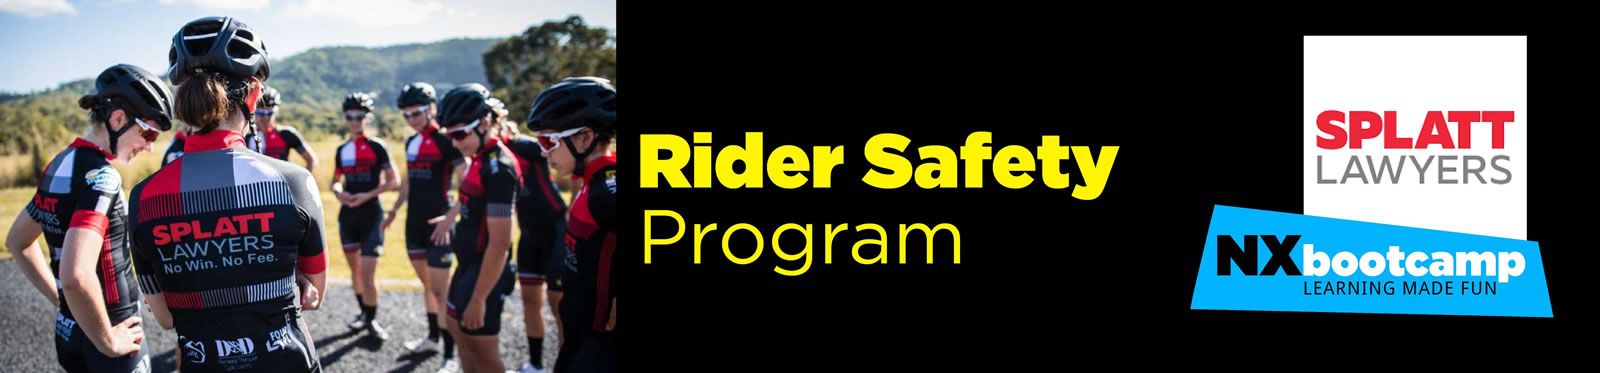 Splatt Lawyers Rider Safety Program